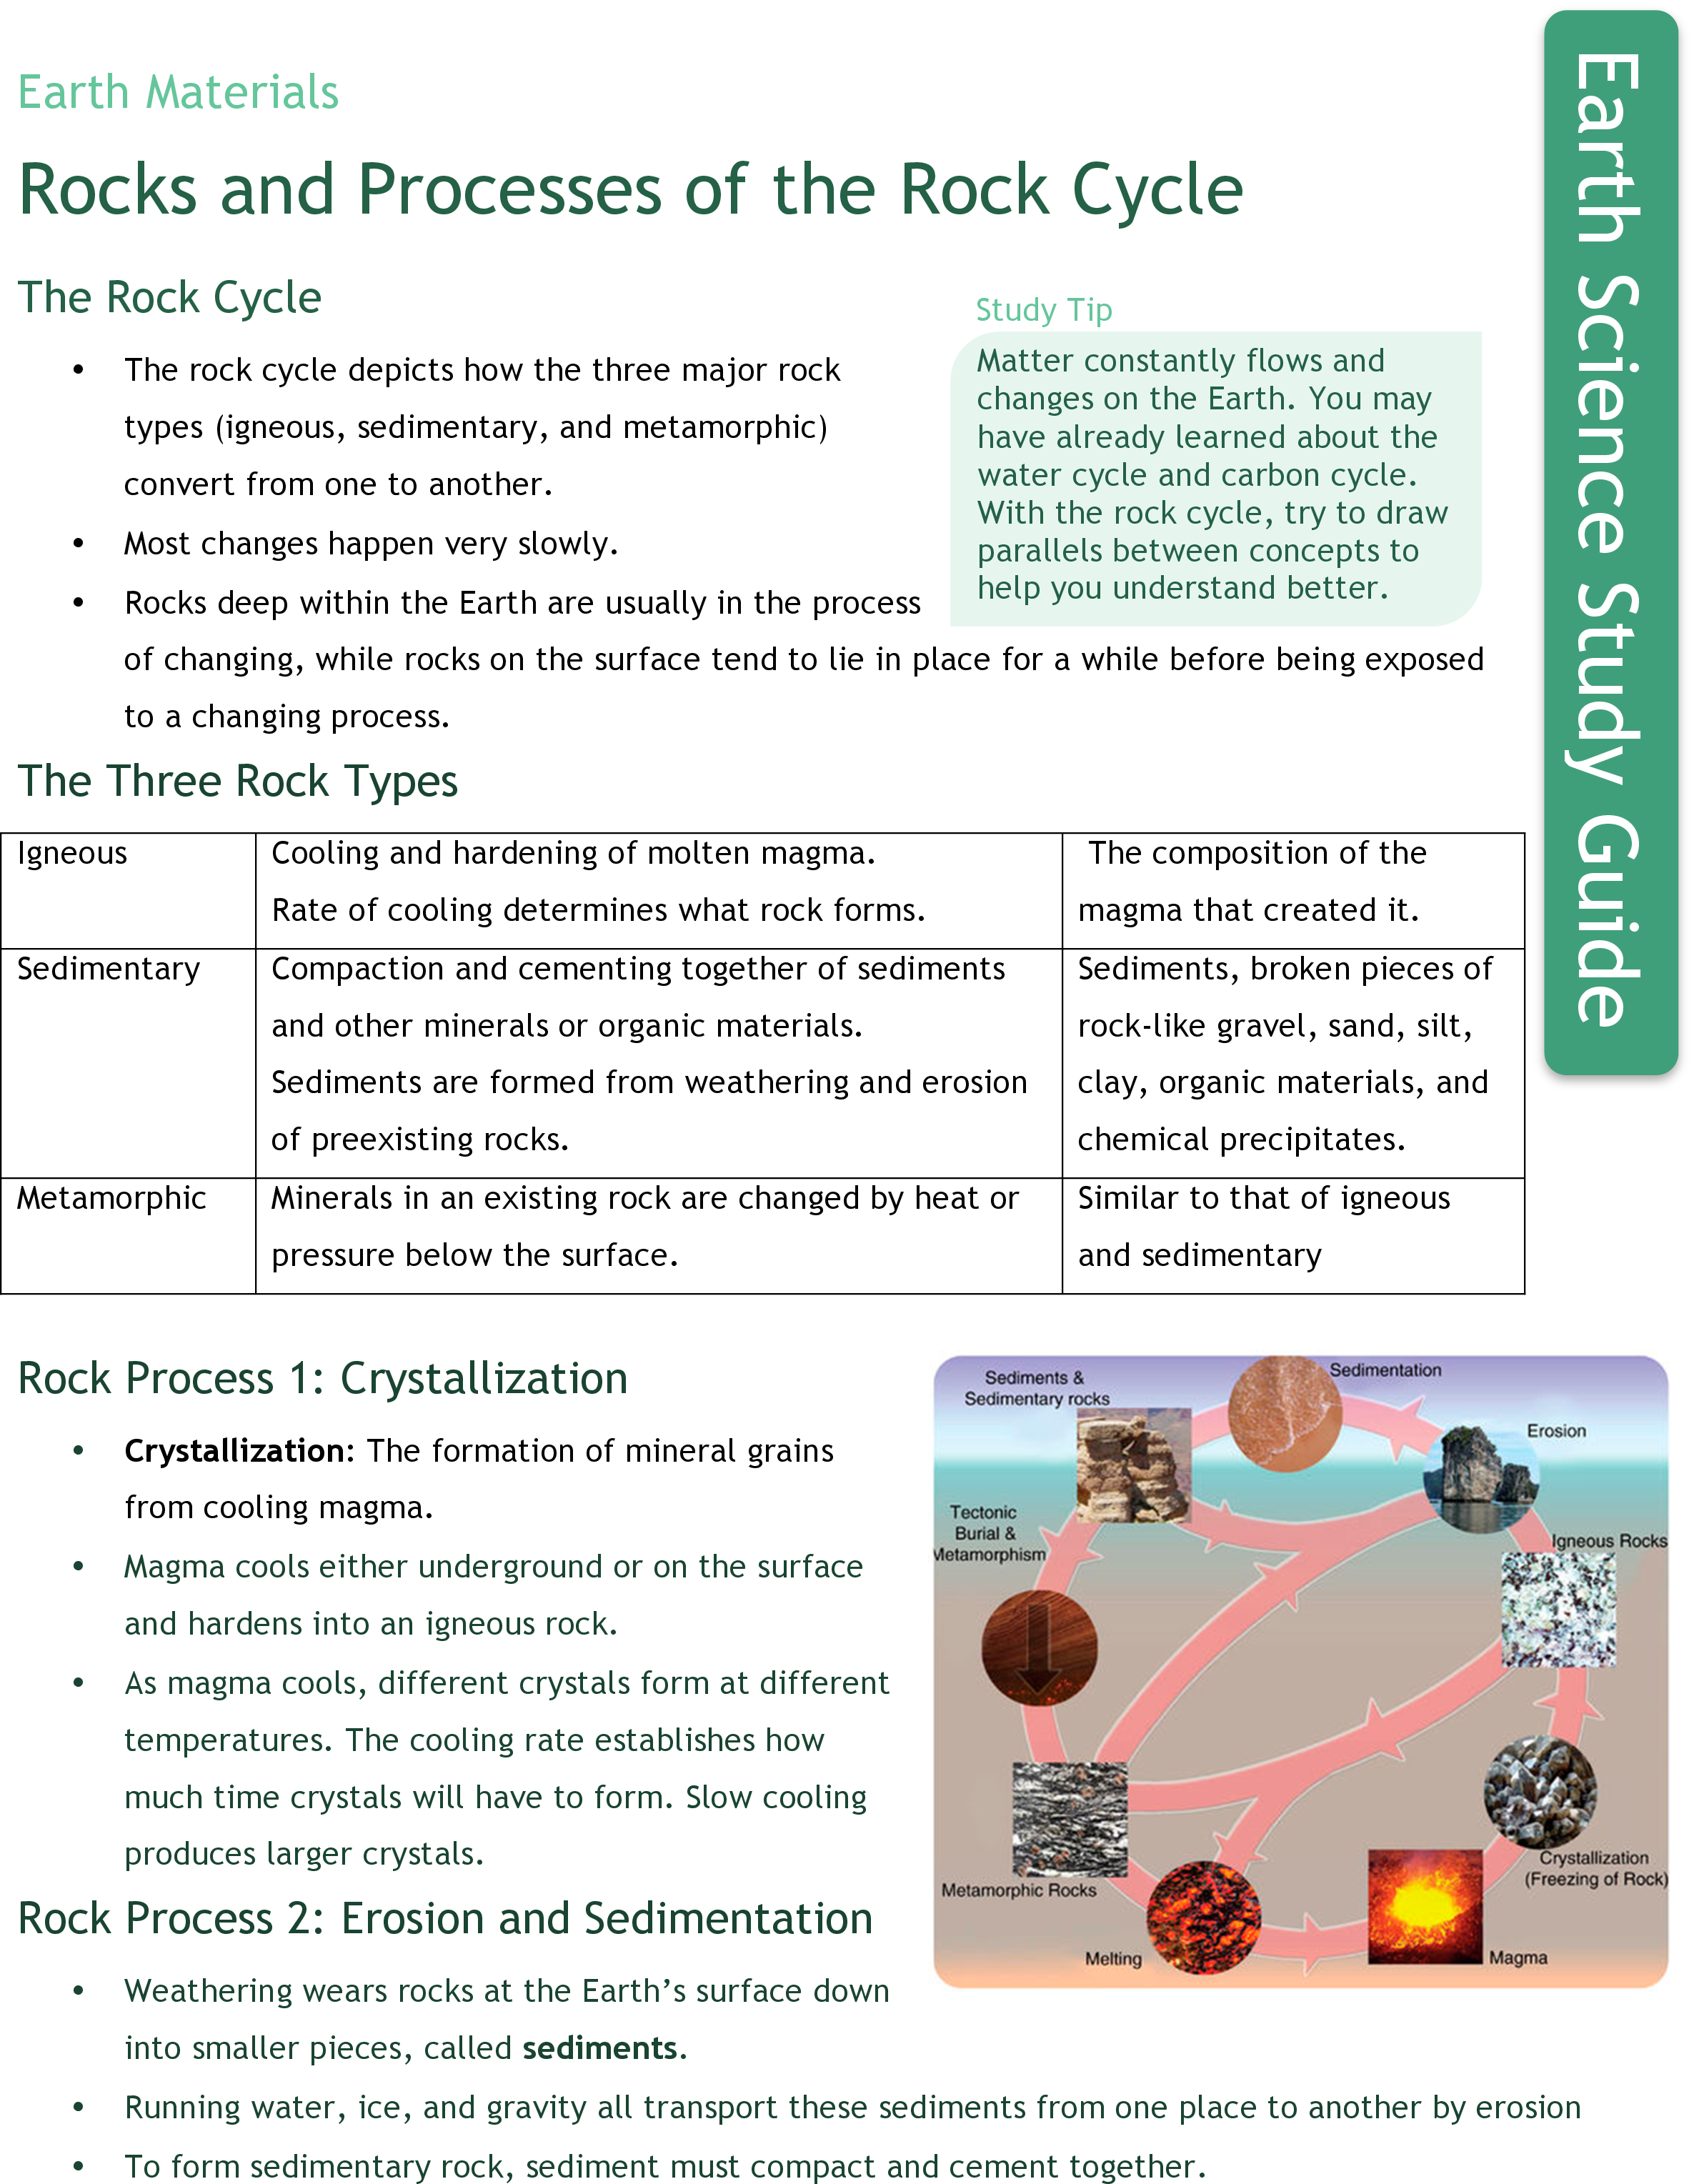 rock cycle processes ck foundation rocks and processes of the rock cycle study guide